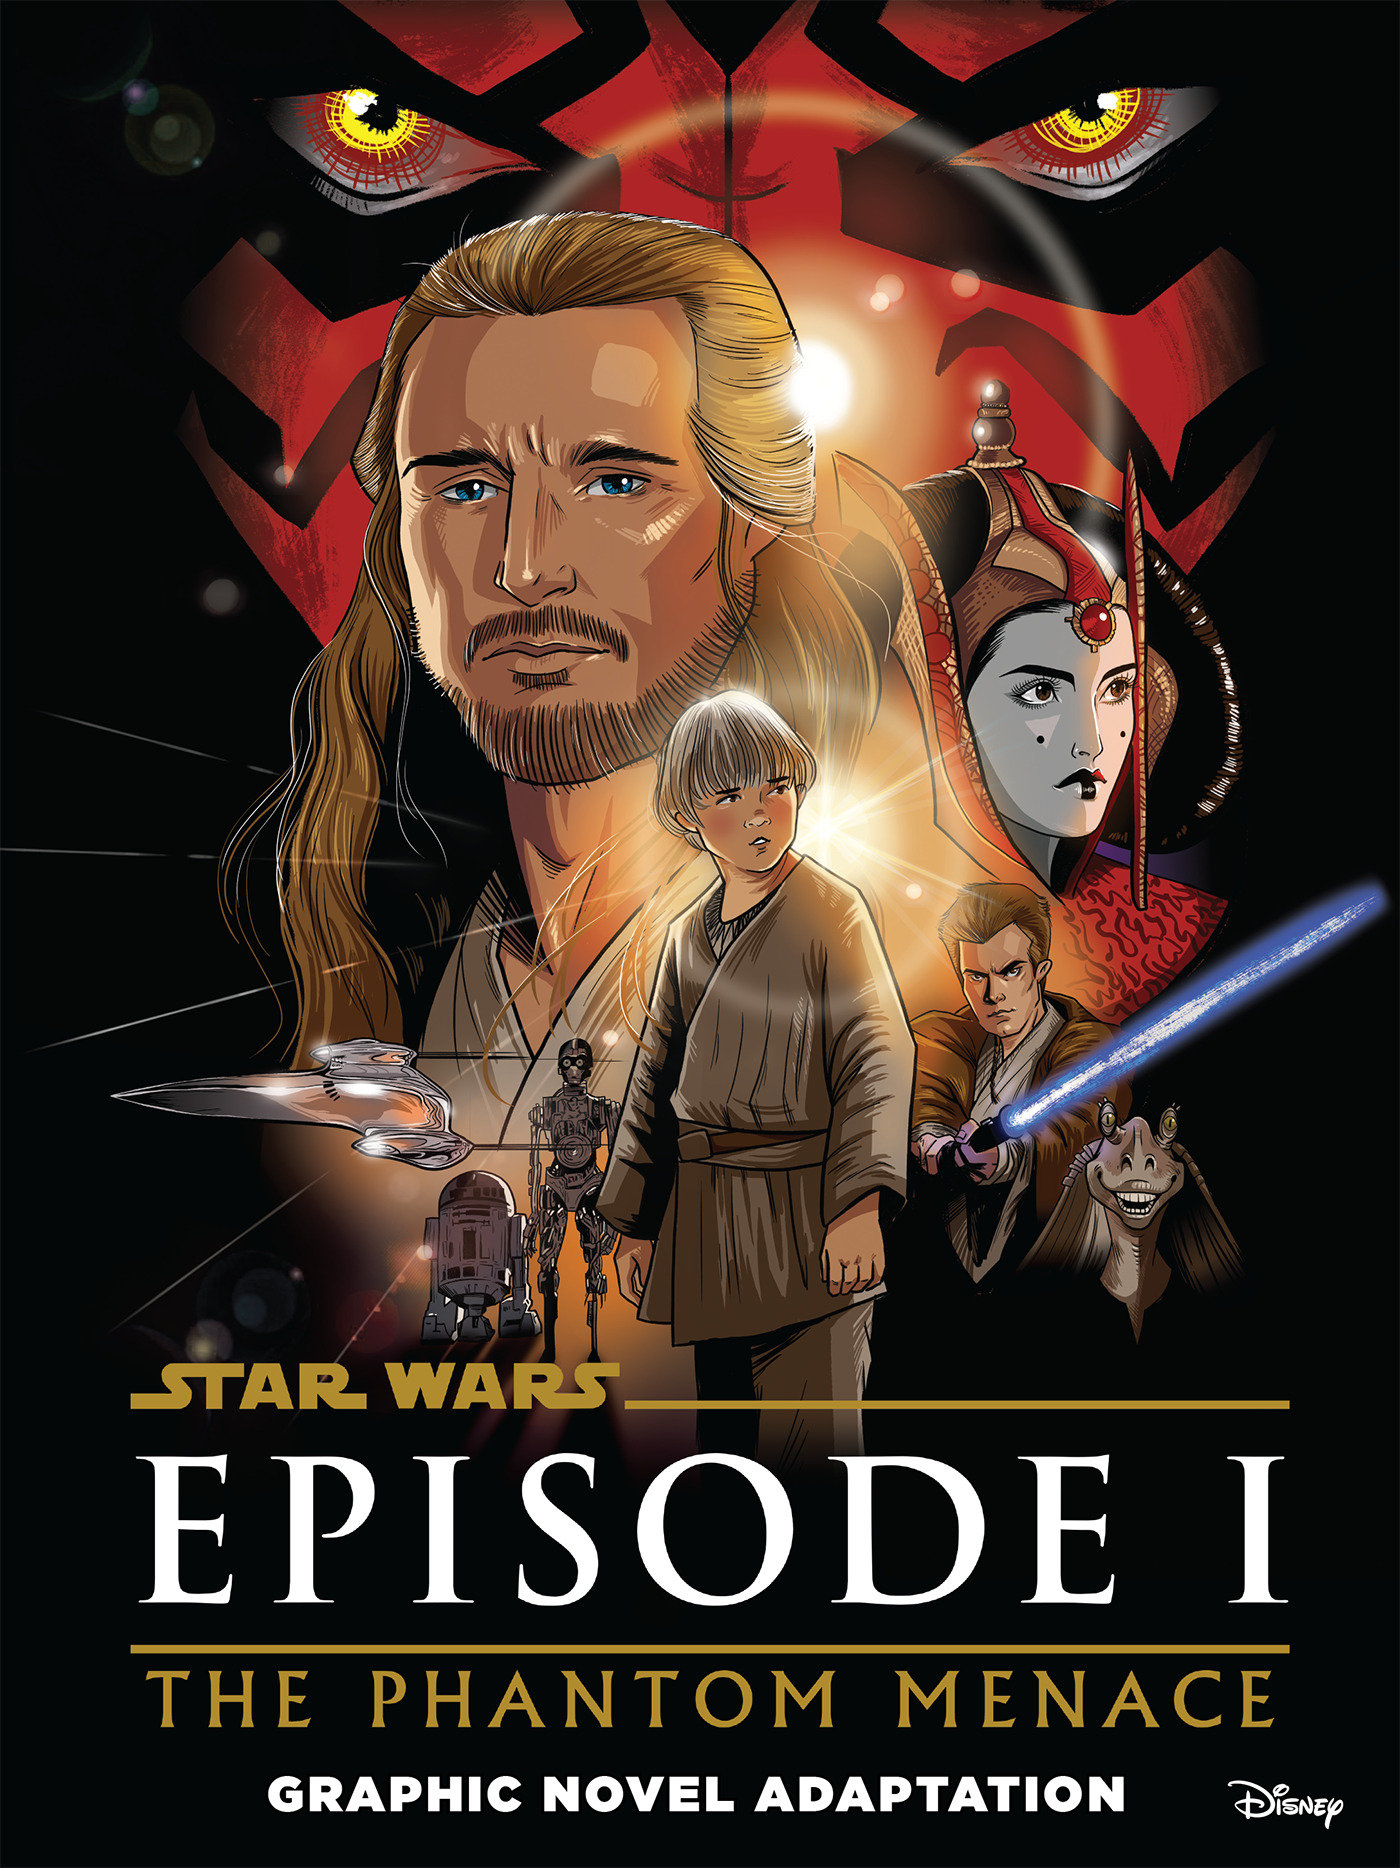 The Phantom Menace - Graphic Novel Adaptation (09.02.2021)